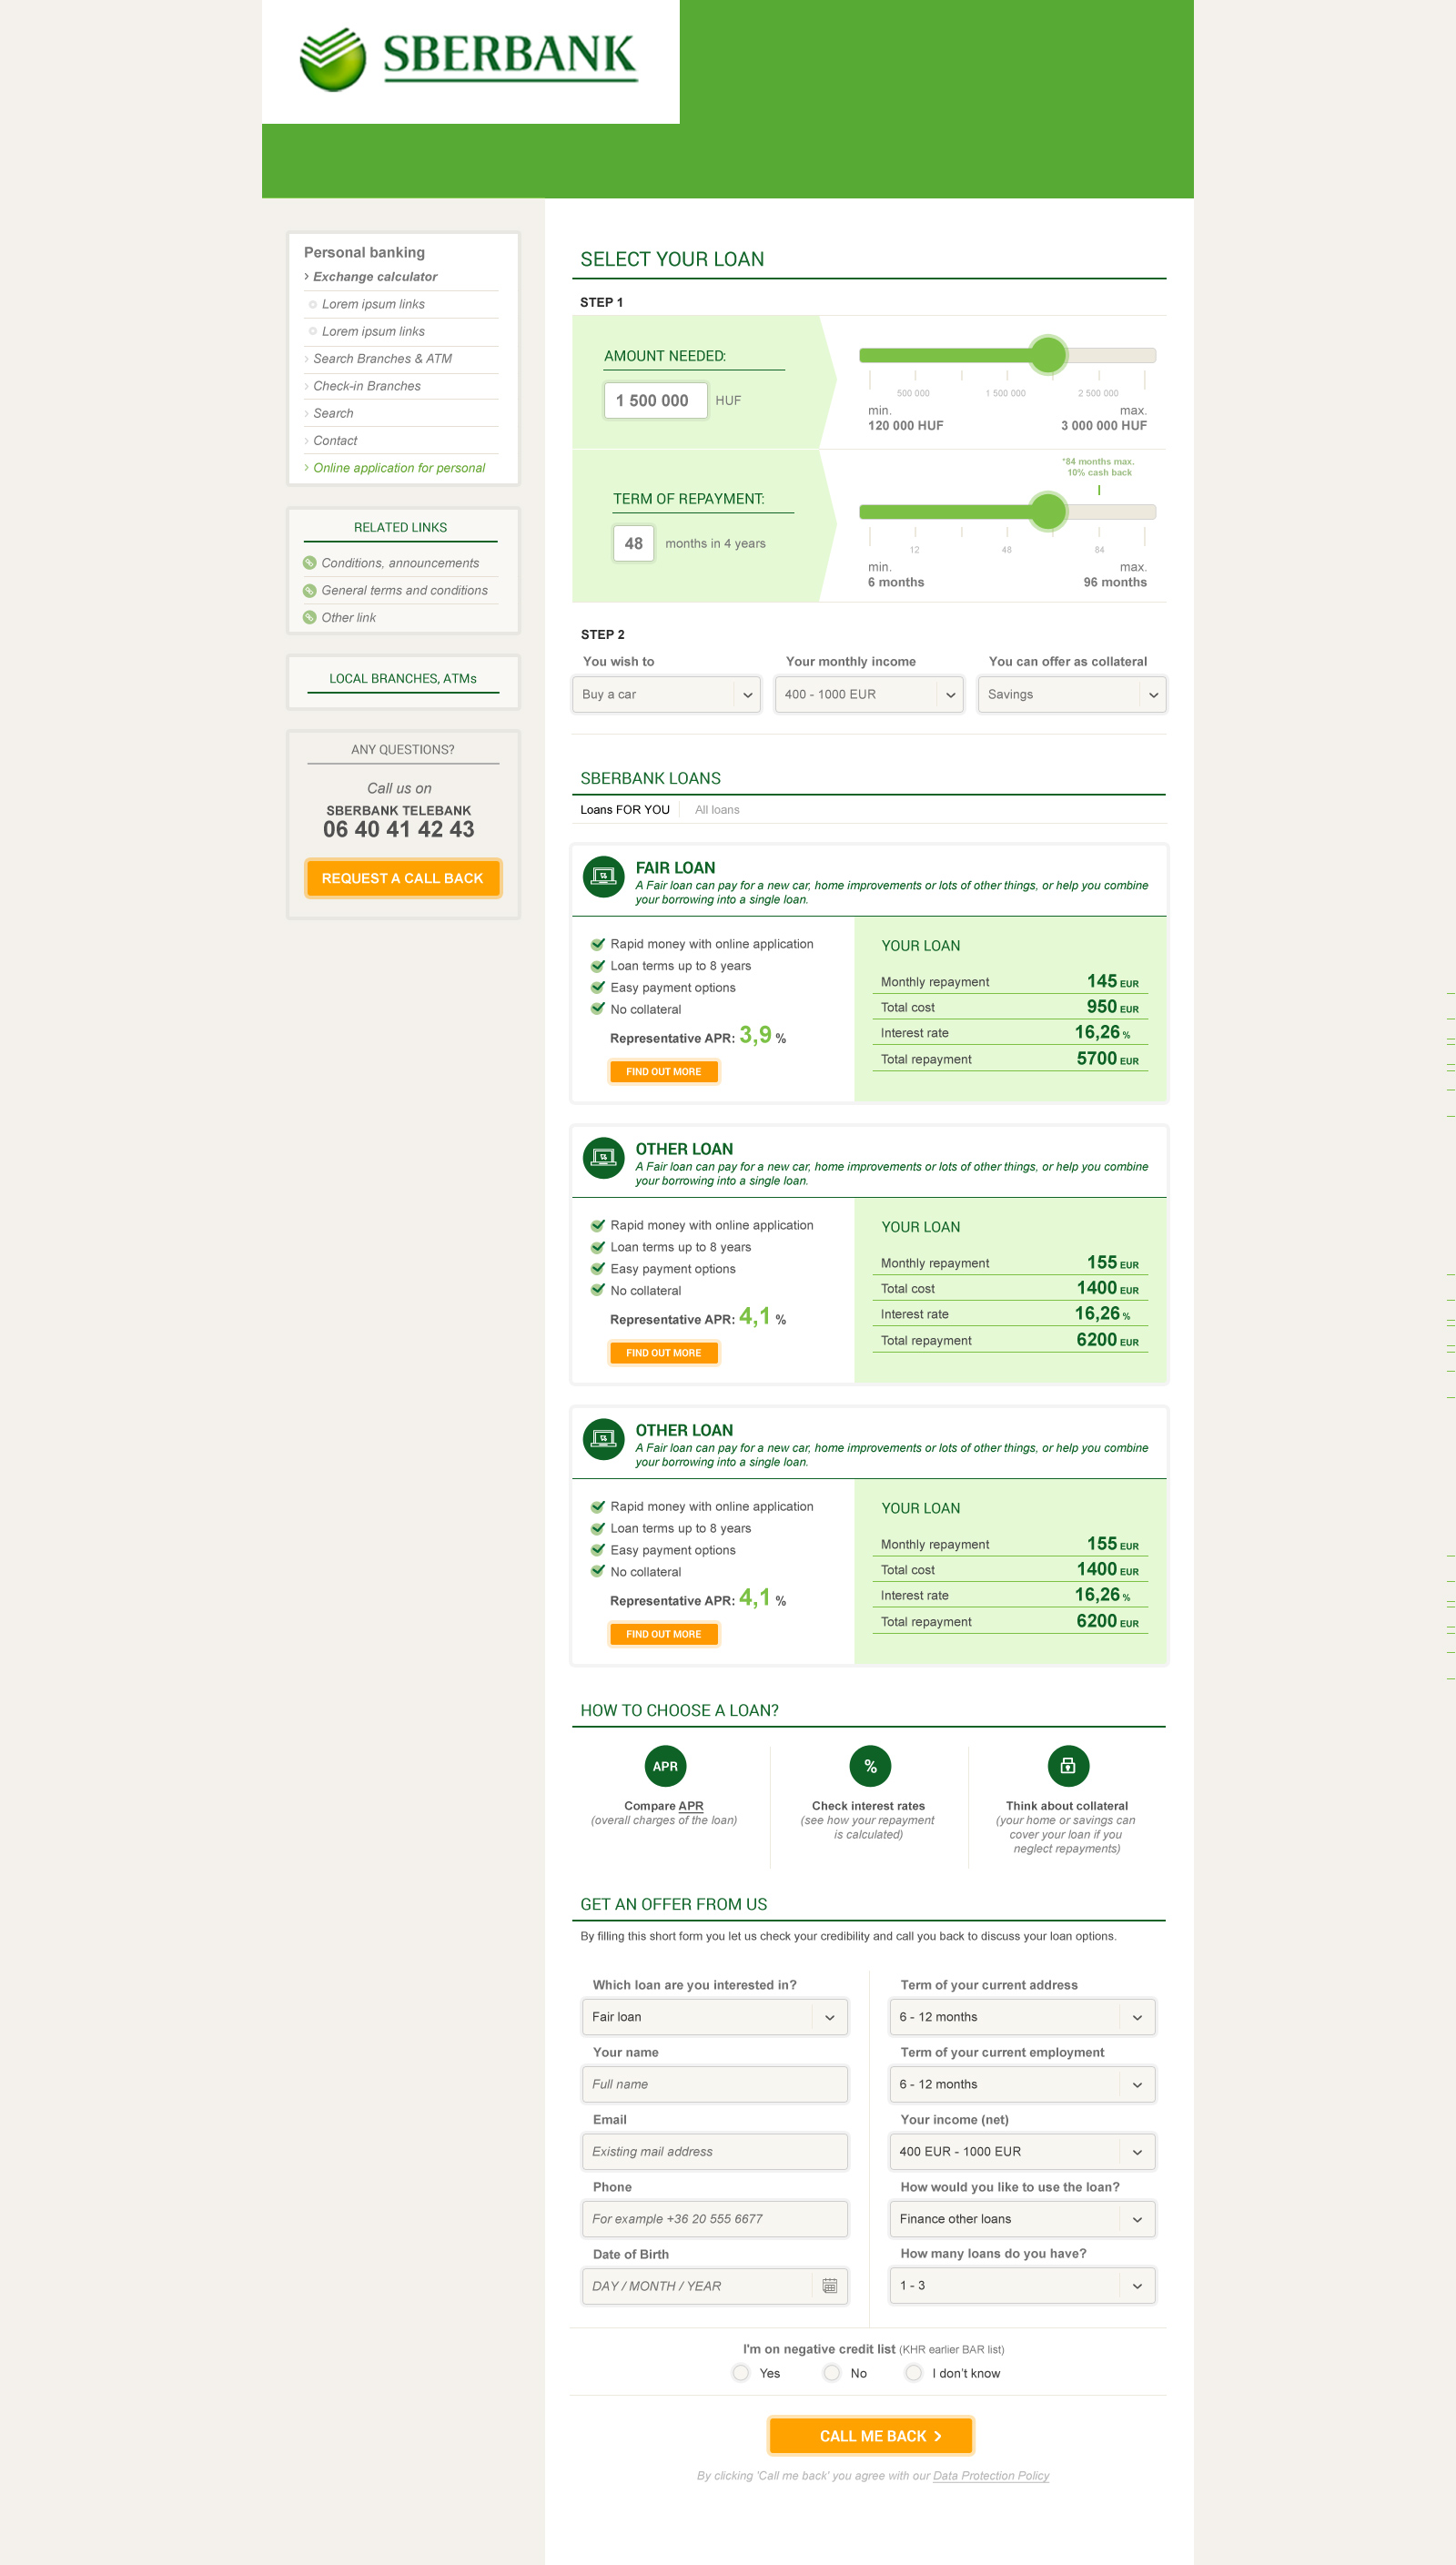 sberbank_loan_selector